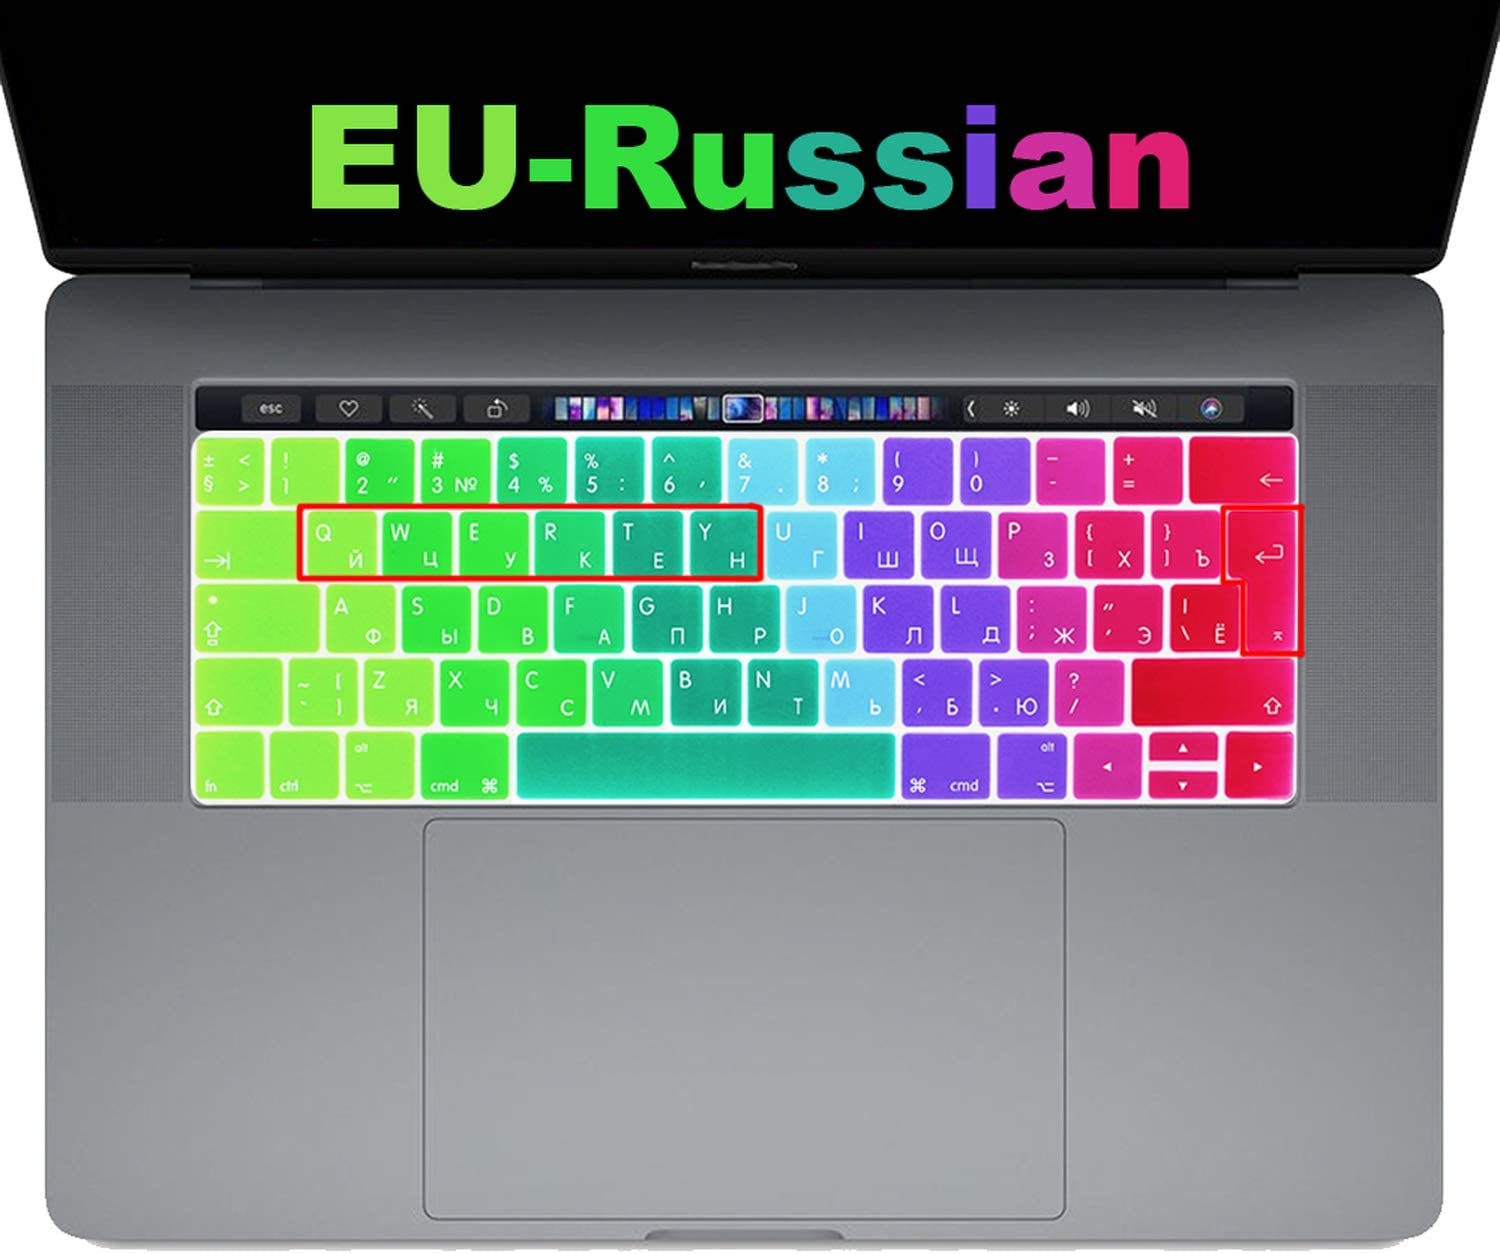 EU Enter Russian Keyboard Cover Protector for New MacBook Pro 13 15 with Touch Bar Model A1706//A1989 A1707//A1990,Gradient Red